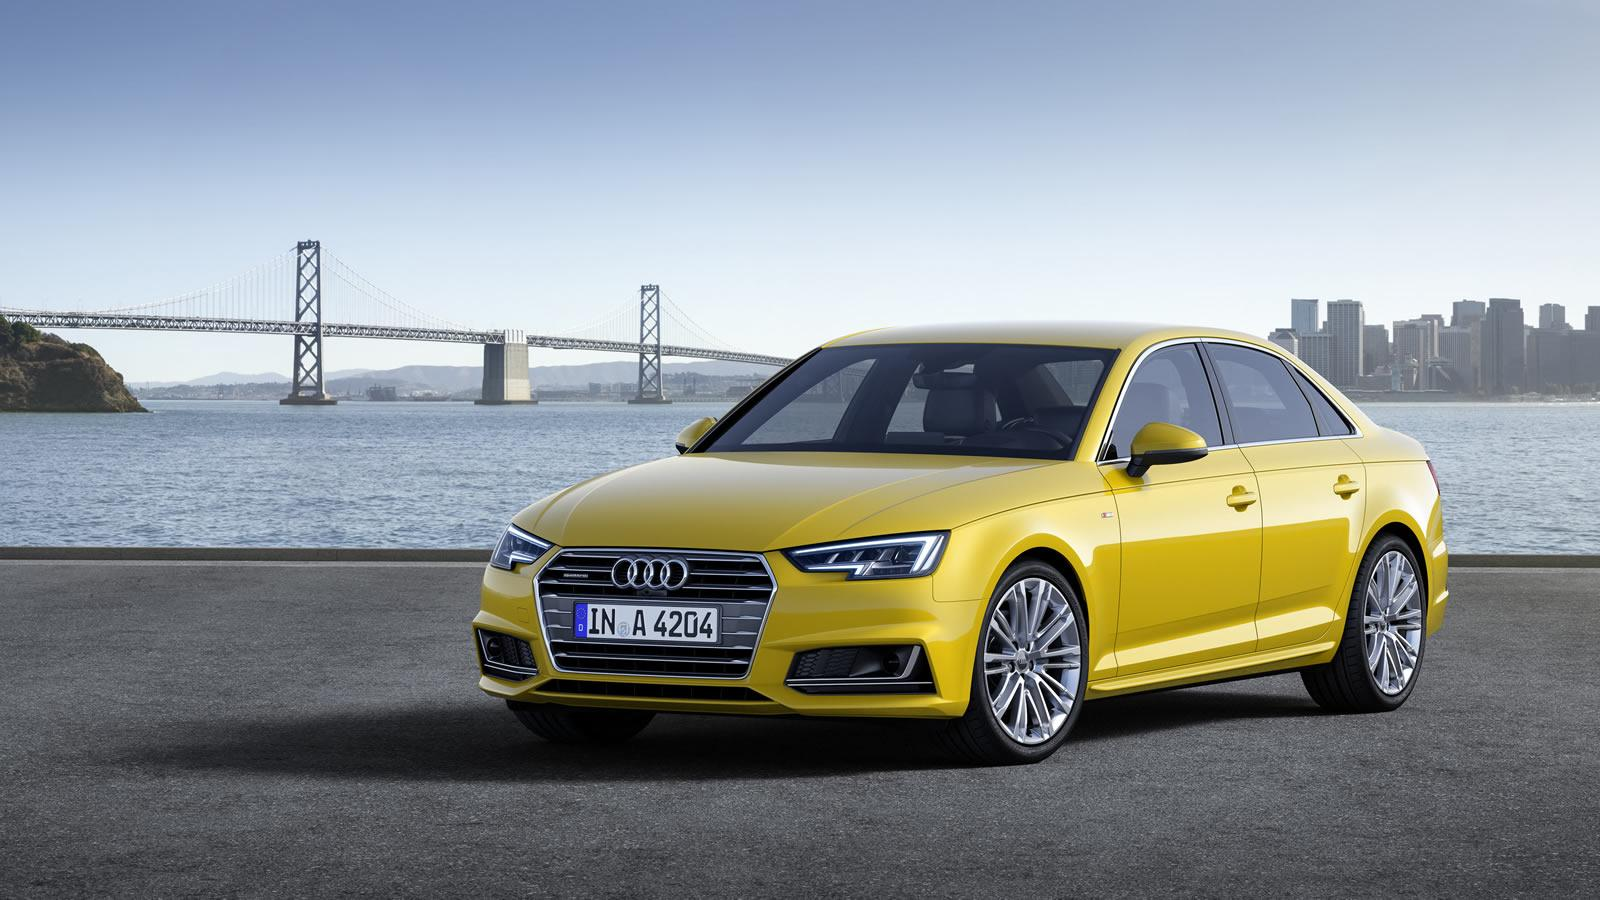 Audi A Price Tag For Germany Revealed The Sedan Starts At - Audi a4 price